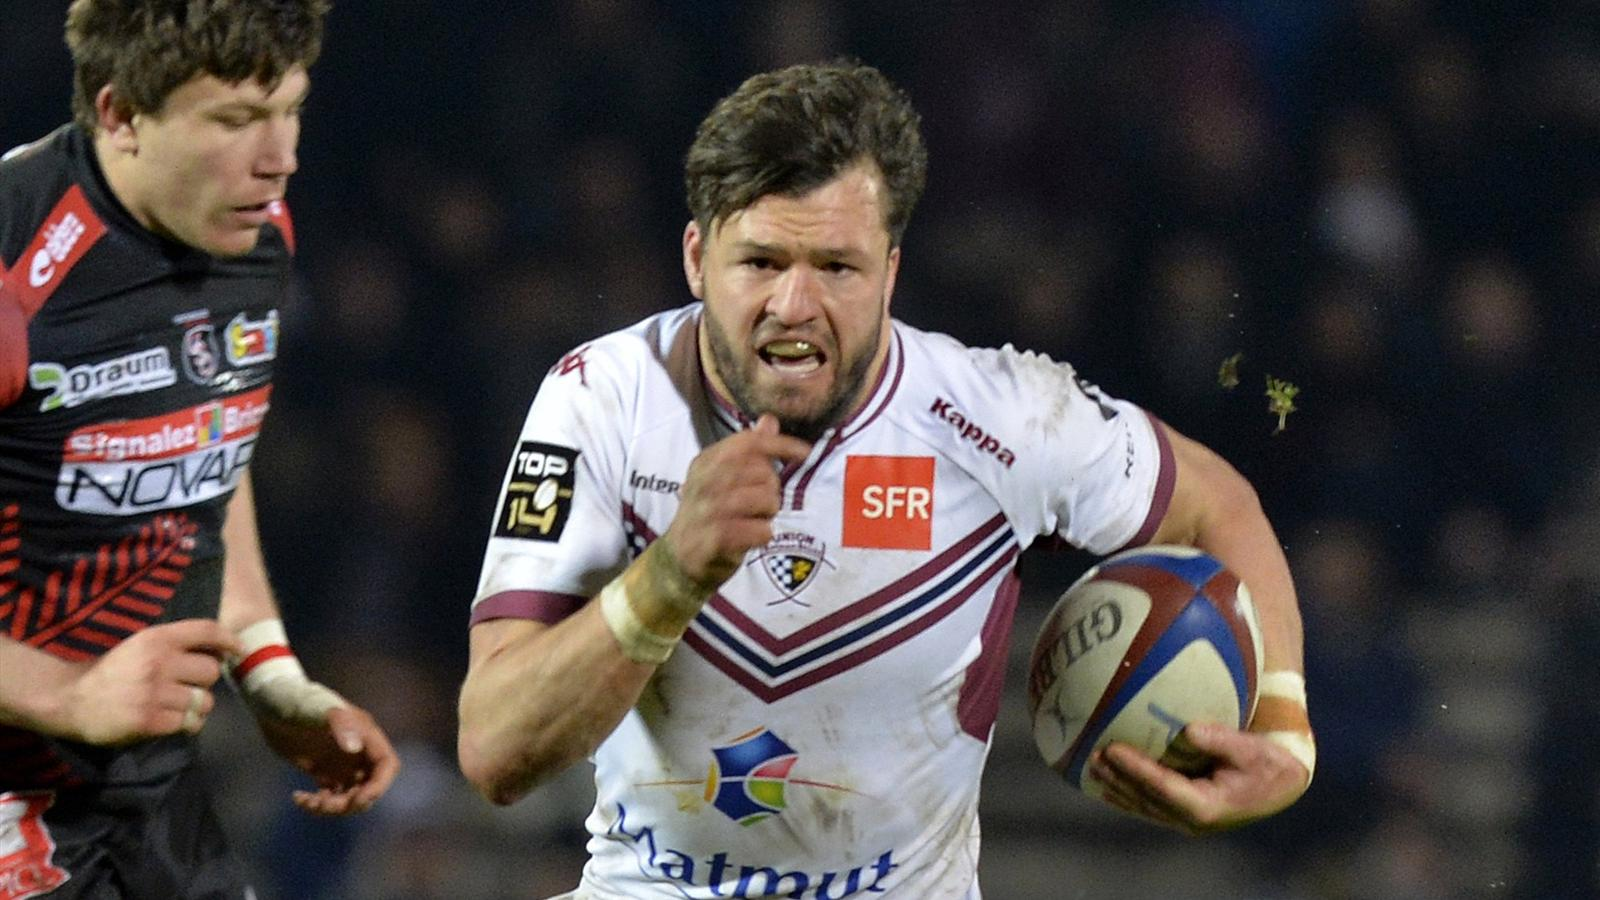 Adam Ashley-Cooper (Bordeaux-Bègles) face à Oyonnax - 5 mars 2016